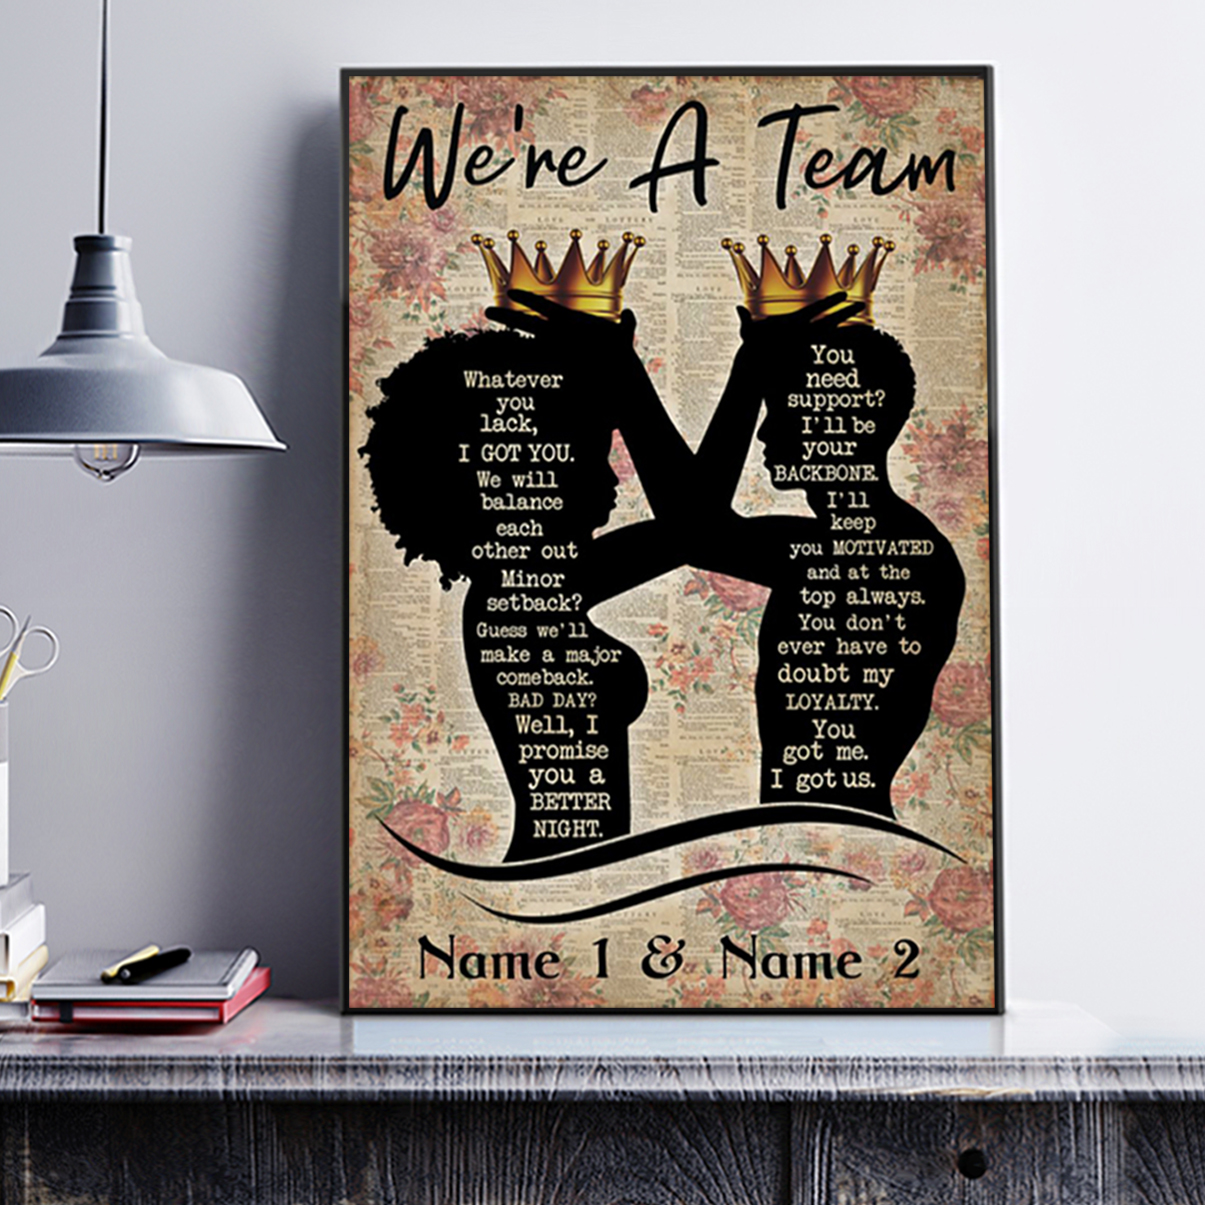 Personalized custom name family we're a team poster A2